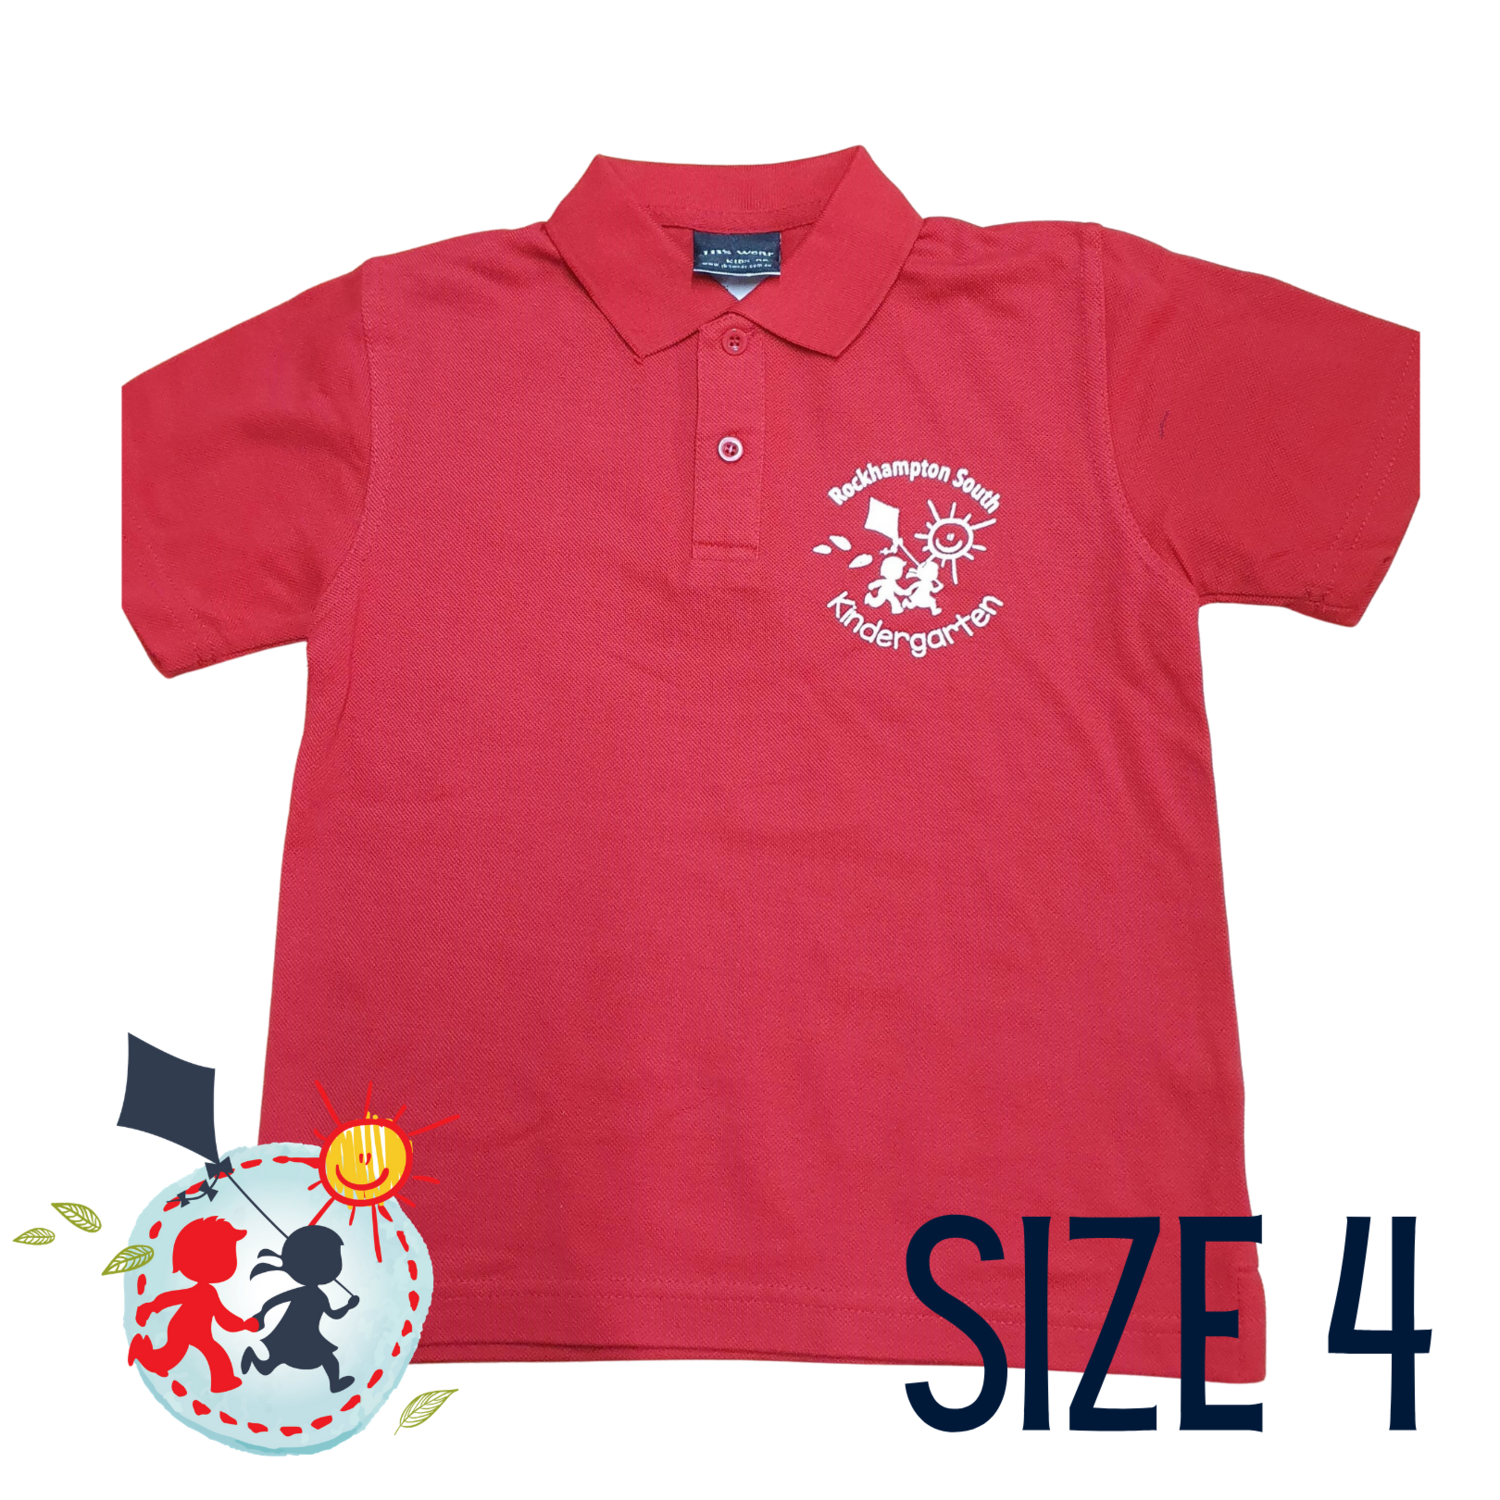 SIZE 4 - Red - Kindy Shirt